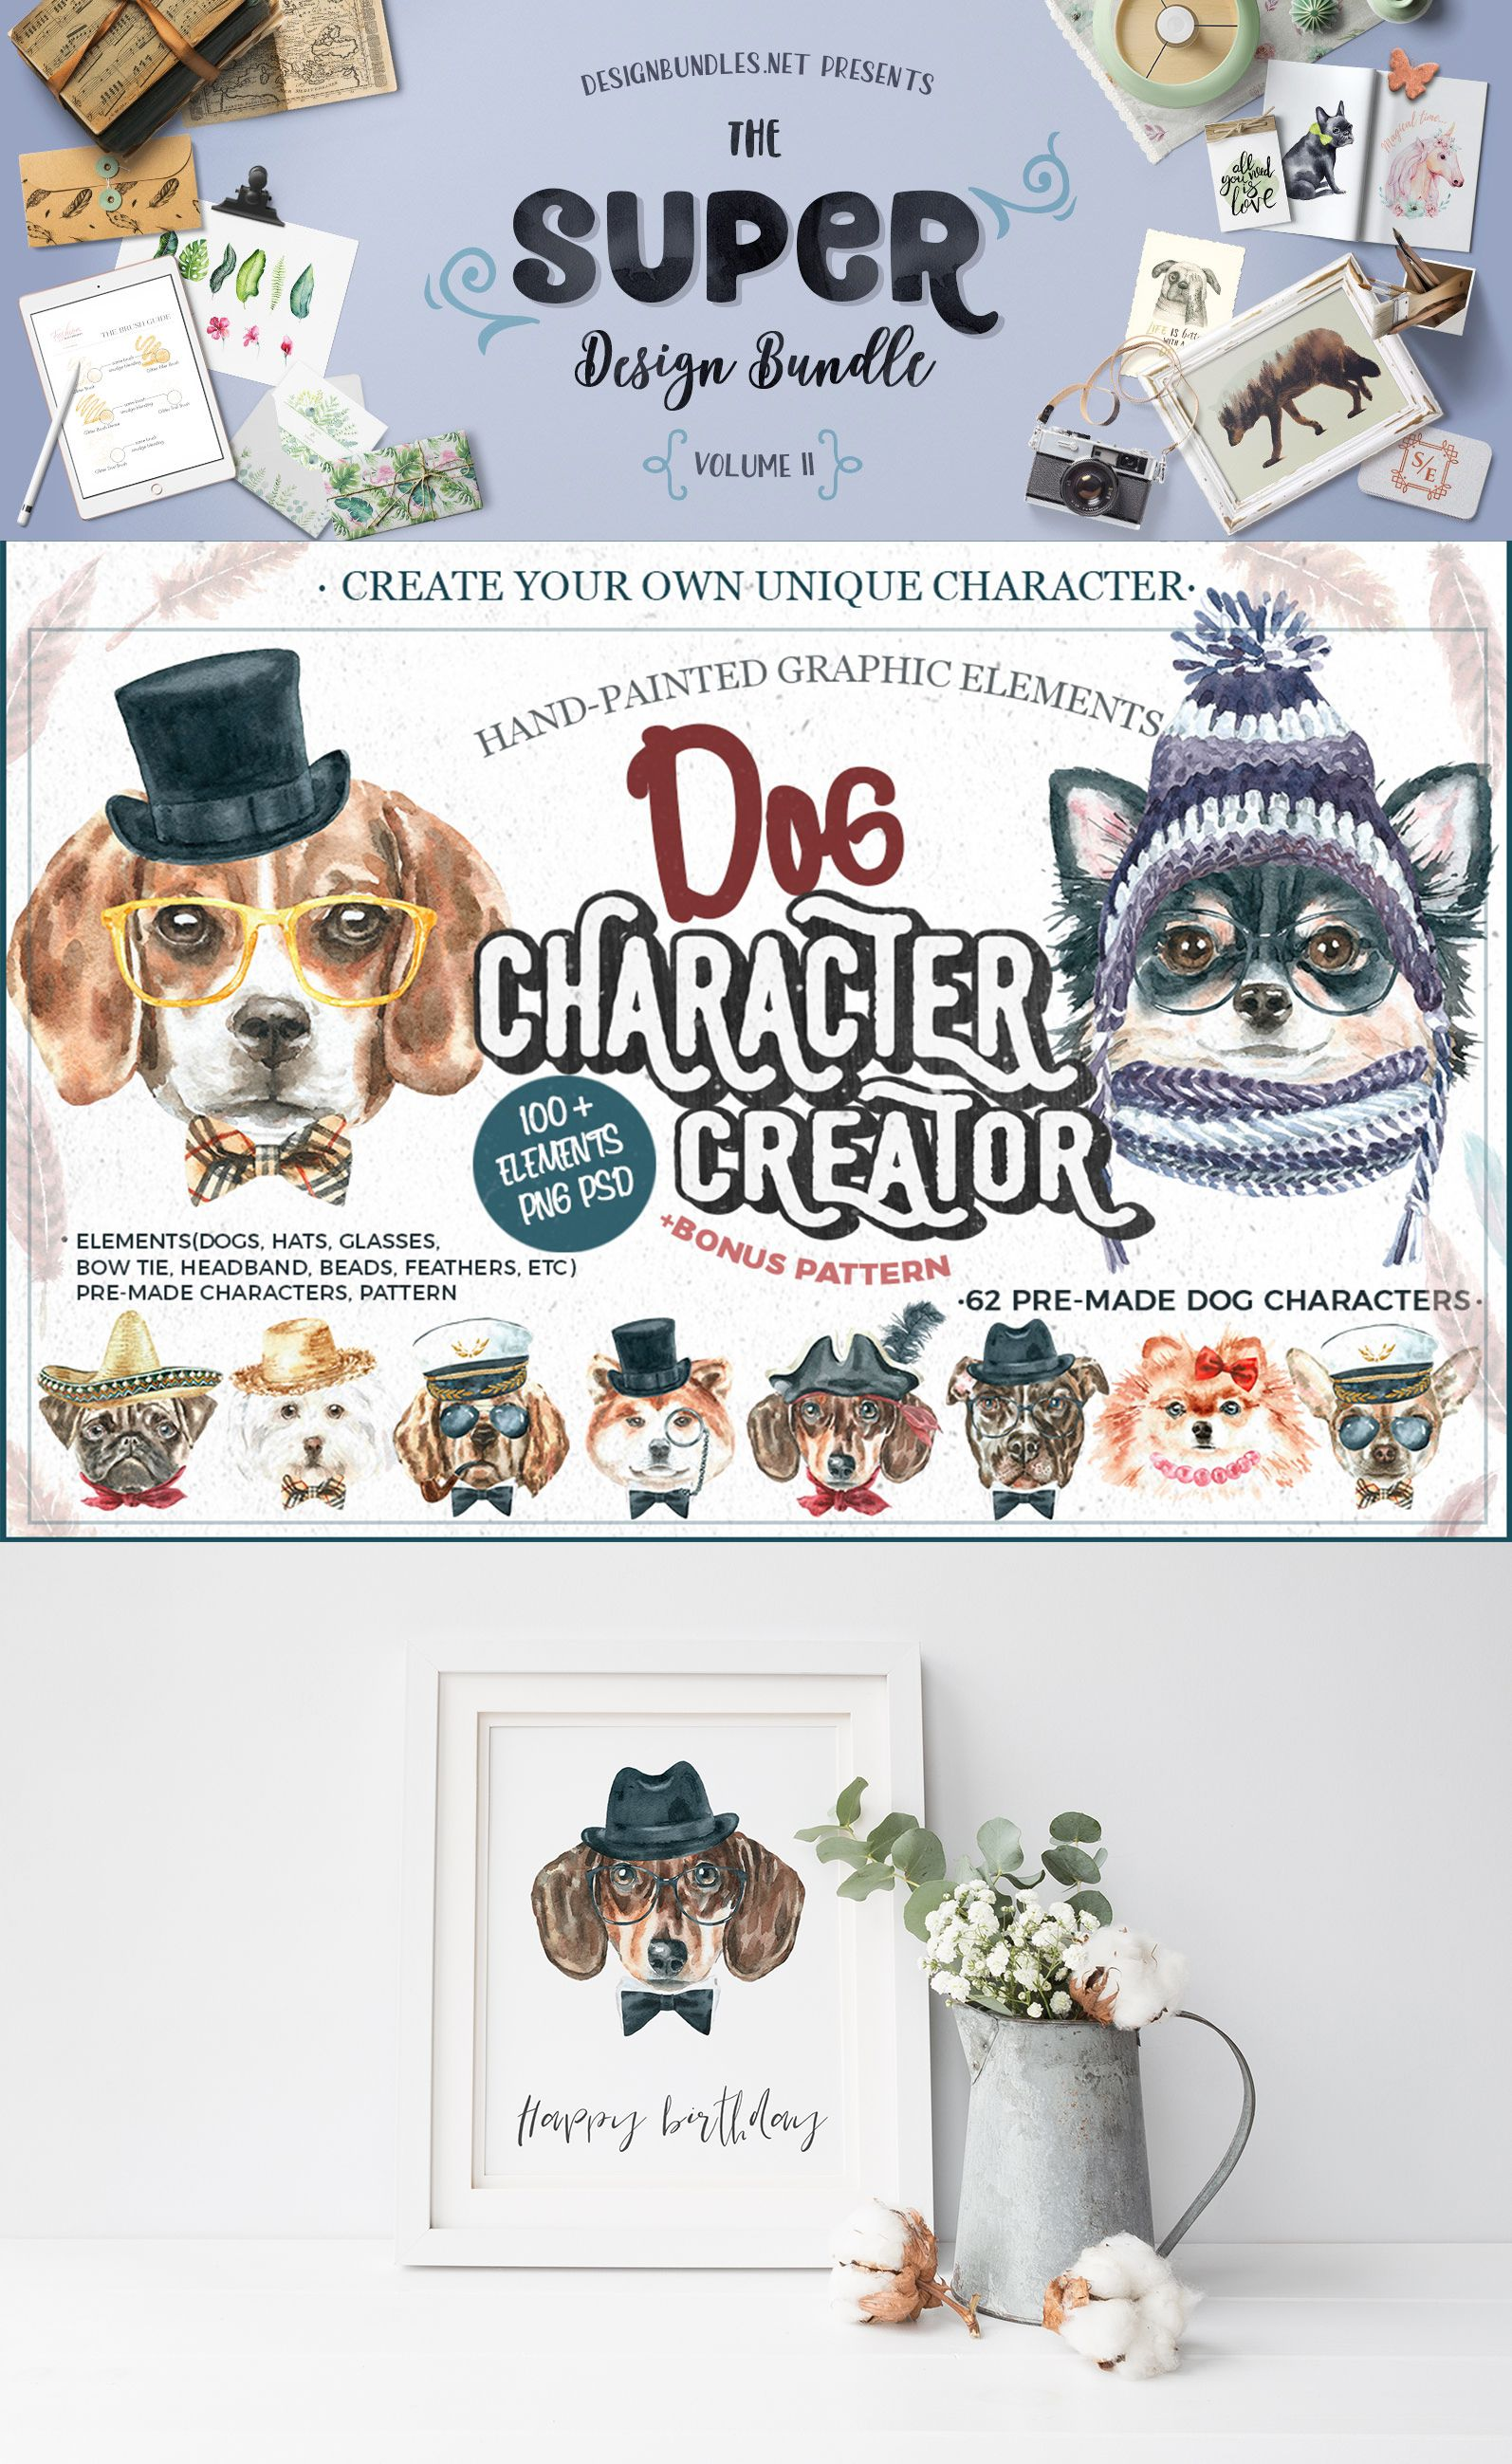 Dog Character Creator included in the Super Bundle. Get